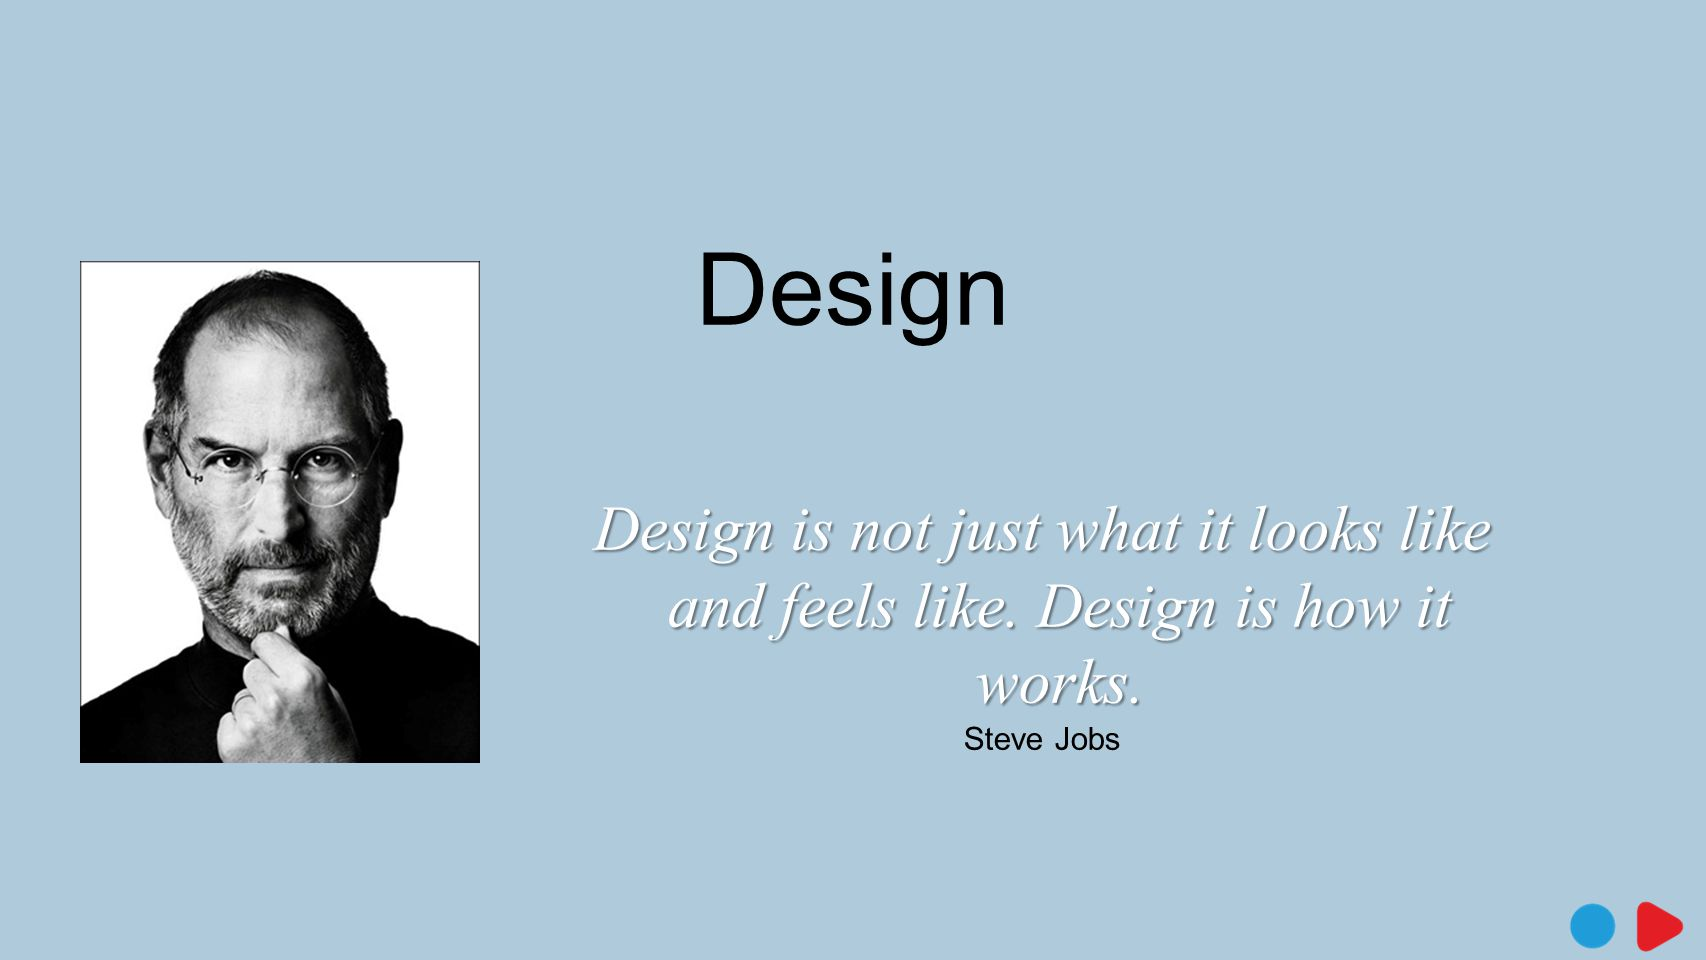 Design Design is not just what it looks like and feels like. Design is how it works. Steve Jobs